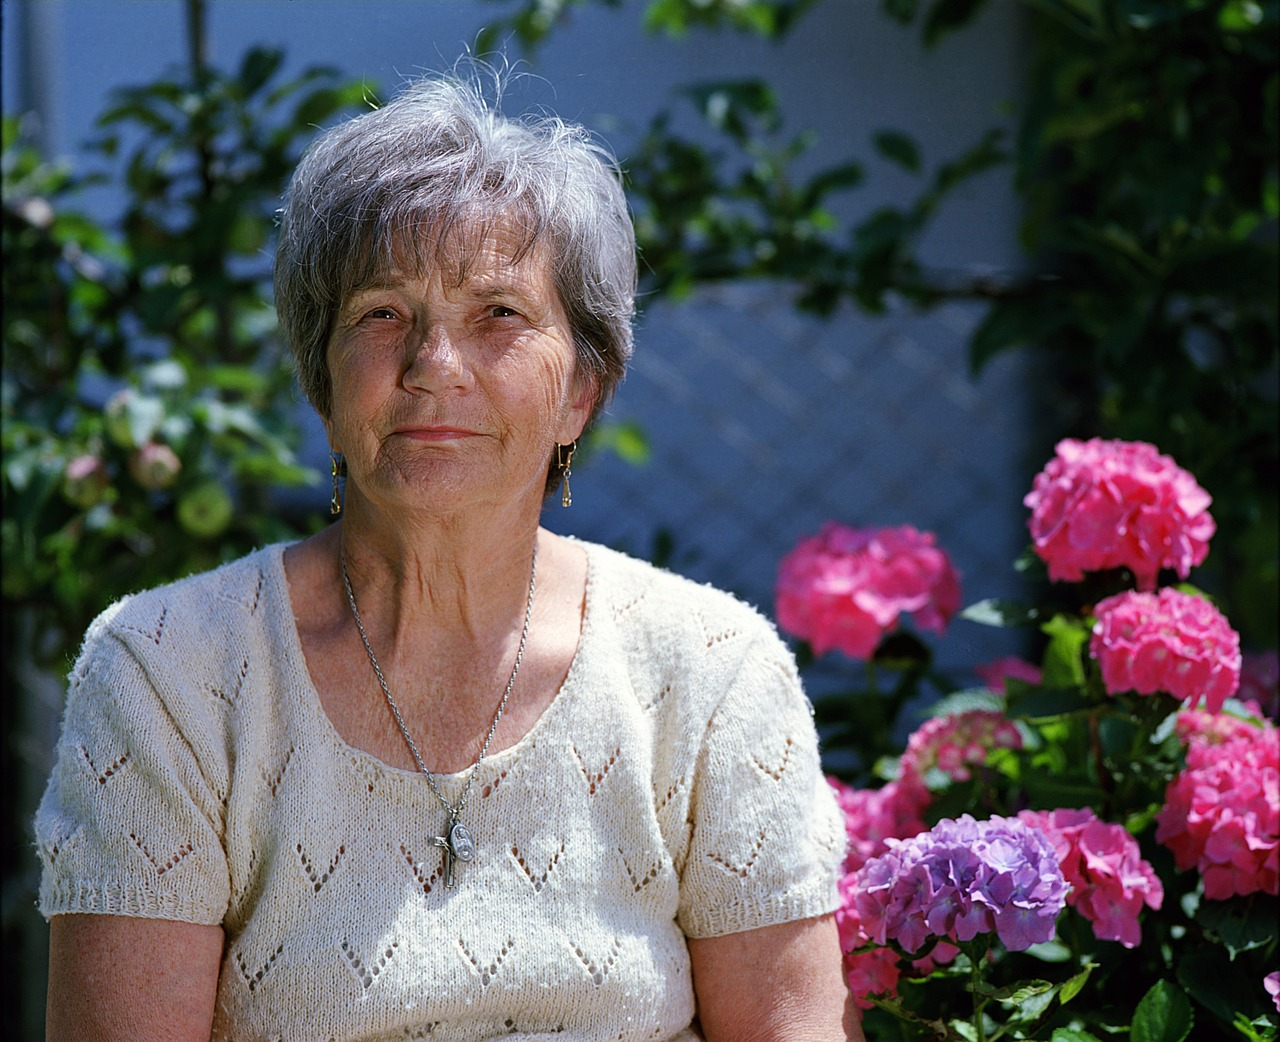 lady worried about caring for elderly relative